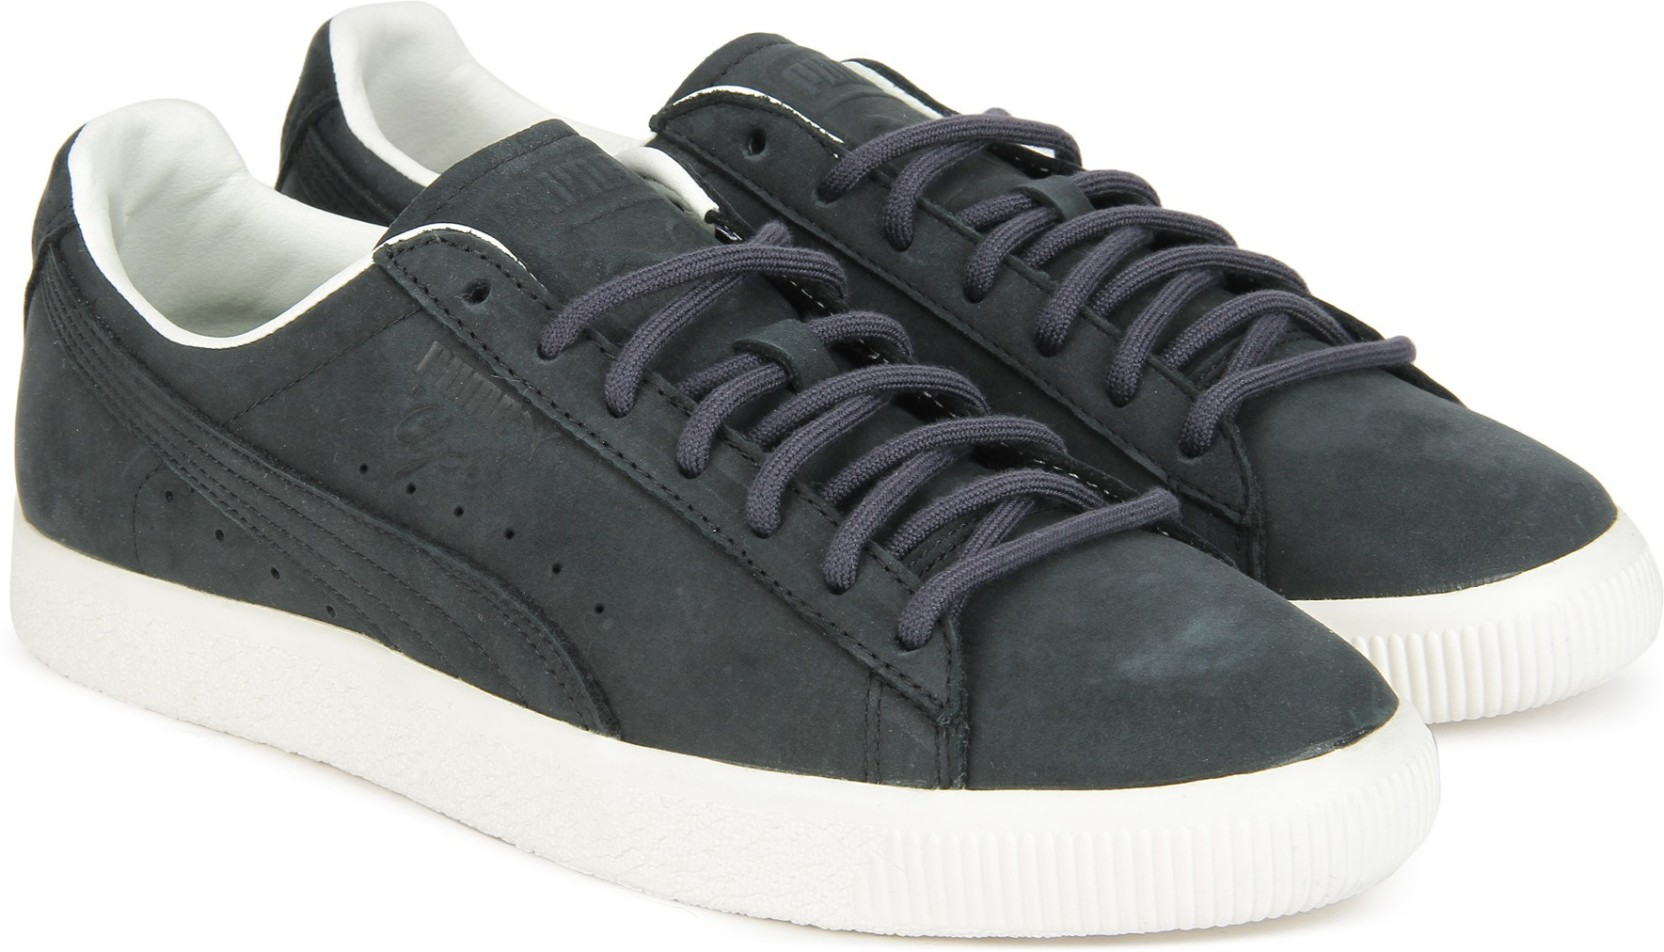 Puma Clyde Frosted Sneakers For Men - Buy Puma Black-Puma Black ... a19ccc192